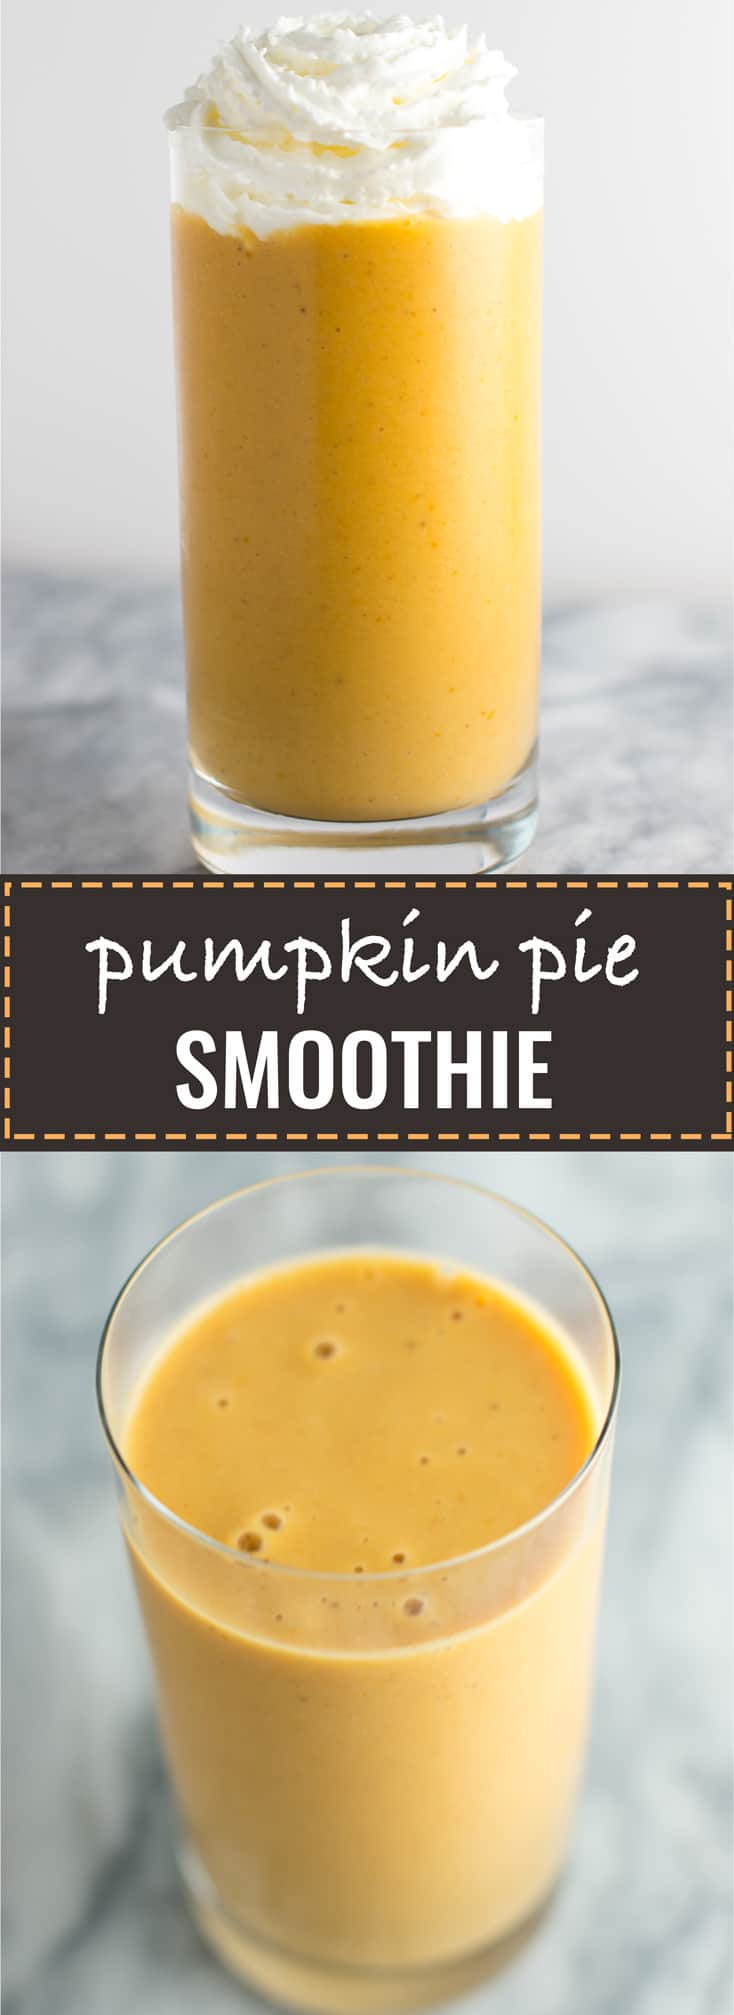 Healthy pumpkin pie smoothie recipe – tastes just like the classic dessert but WAY healthier for you! #pumpkinpie #healthypumpkinpie #smoothie #pumpkinpiesmoothie